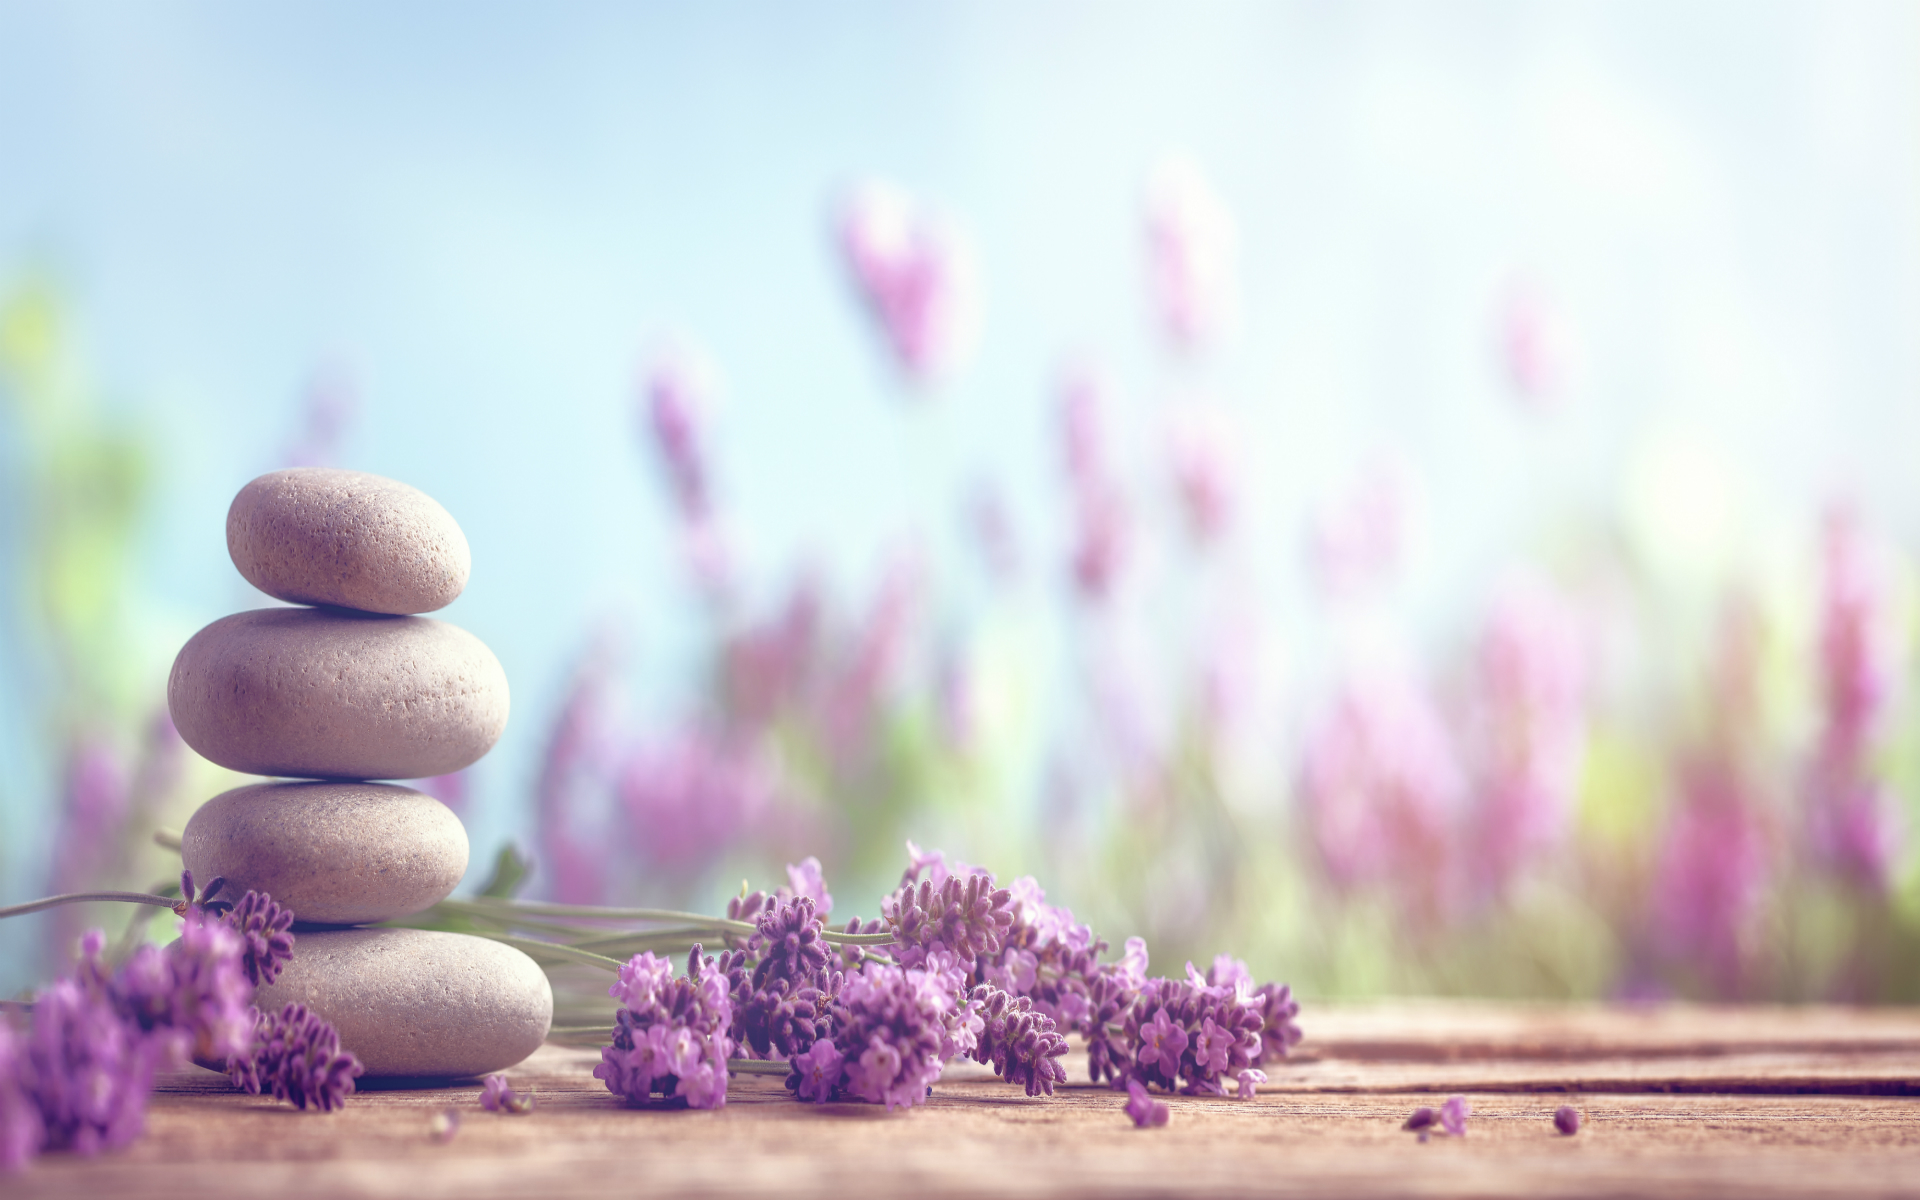 Point of focus on stacked spa rocks surrounded by fresh lavender stems